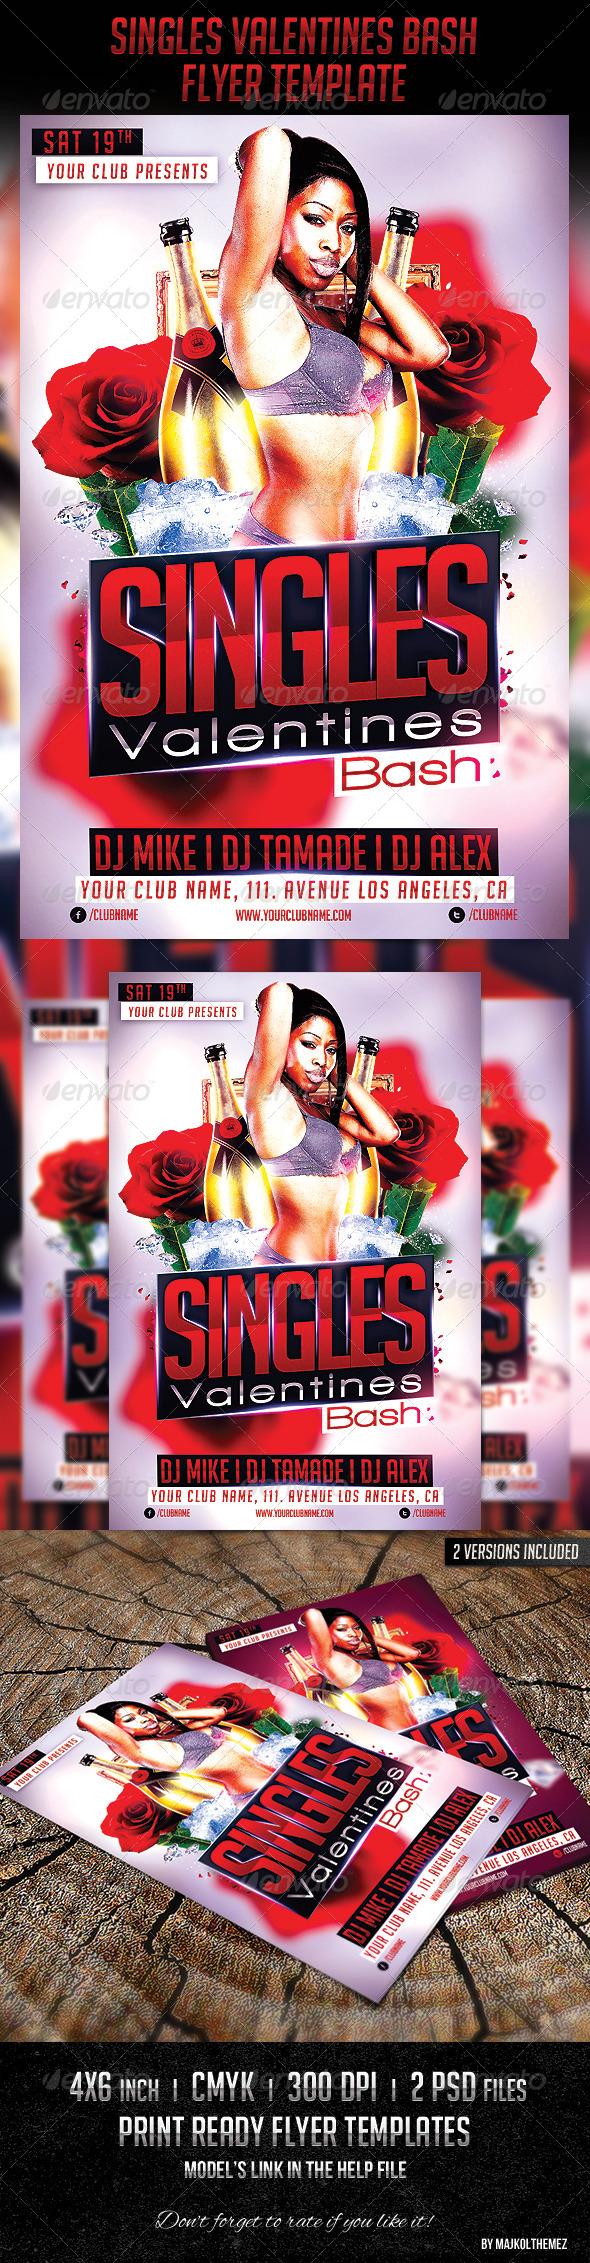 Singles Valentines Bash Party Flyer  - Events Flyers